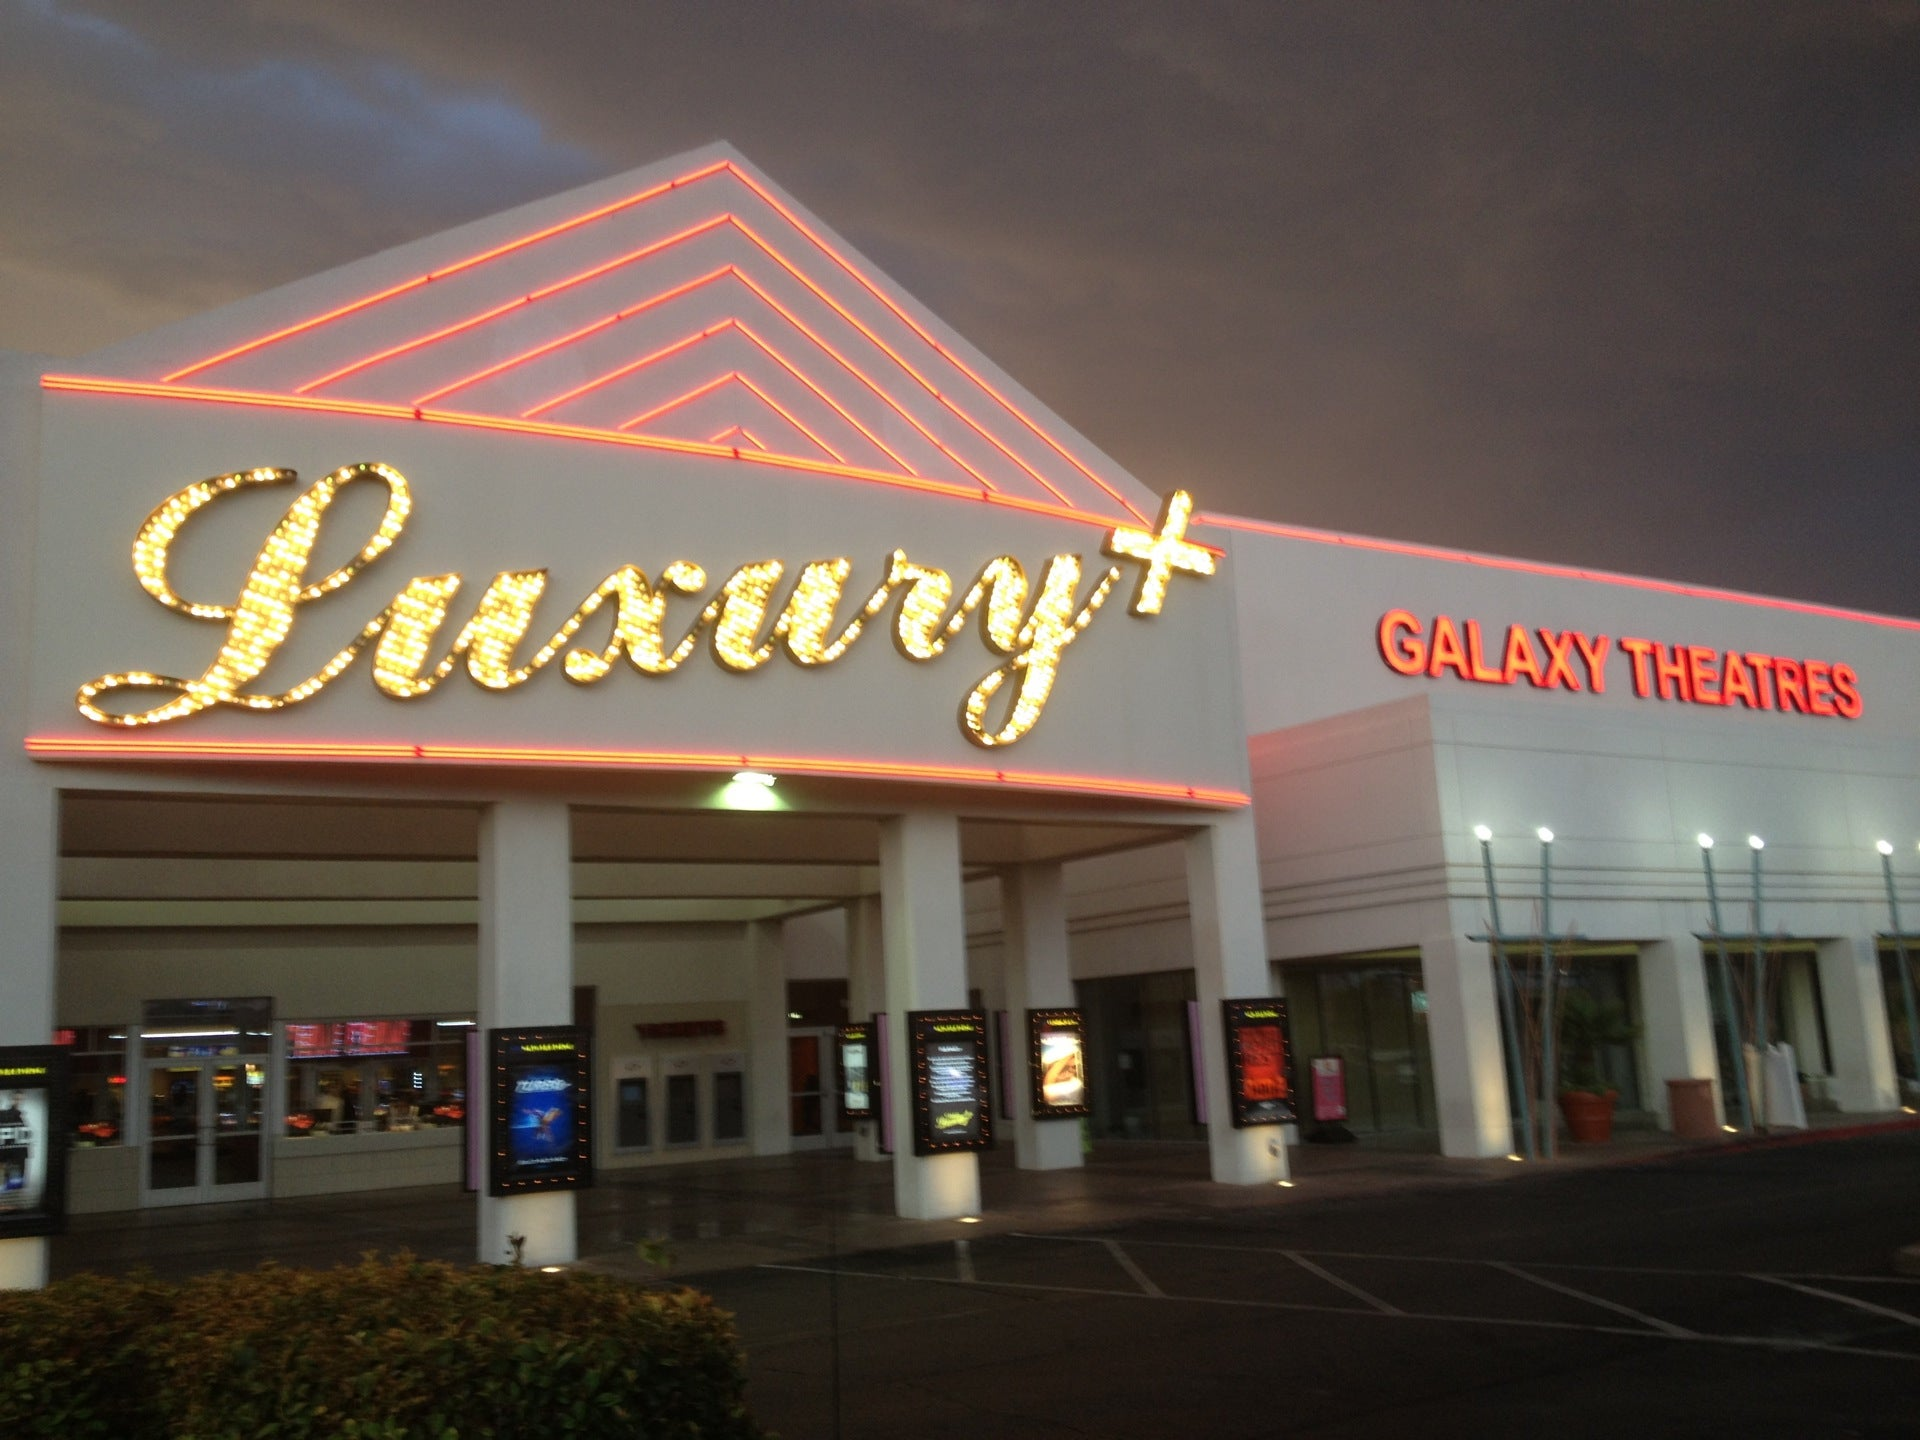 Galaxy theatres green valley cinema henderson nv reviews - The Daily Meal Editors And Community Say